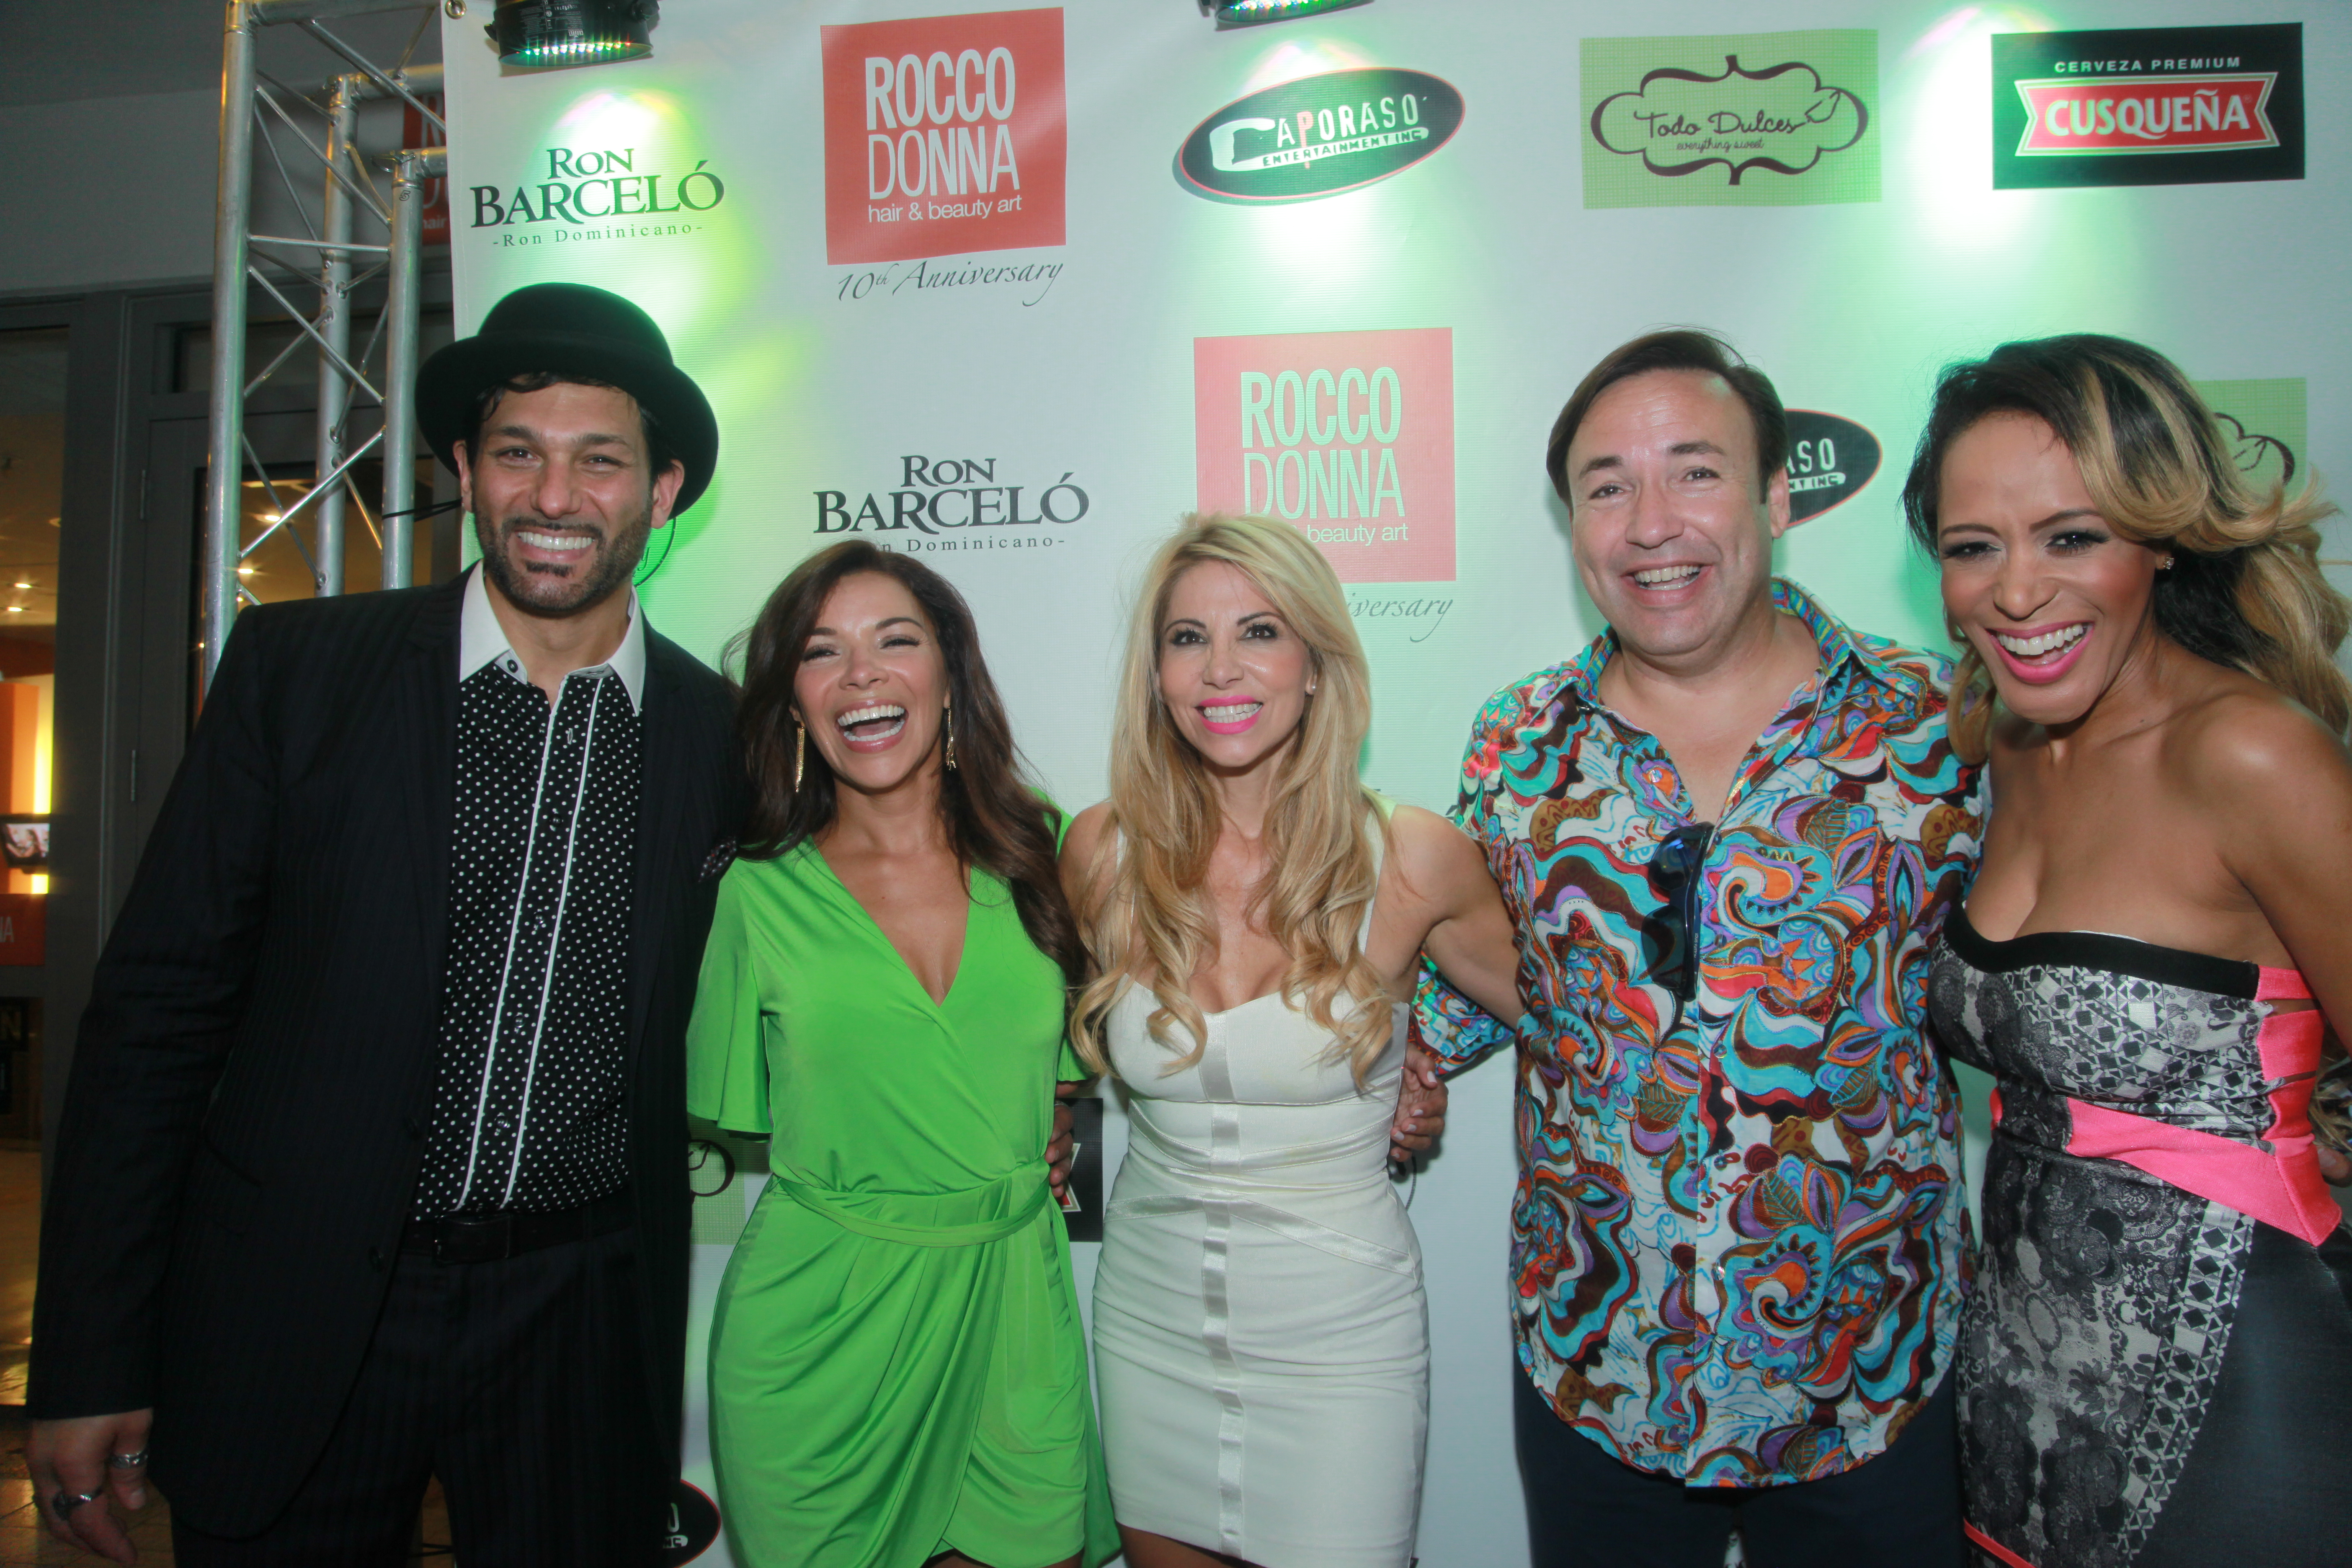 rocco donna hair and beauty art celebrated its 10th